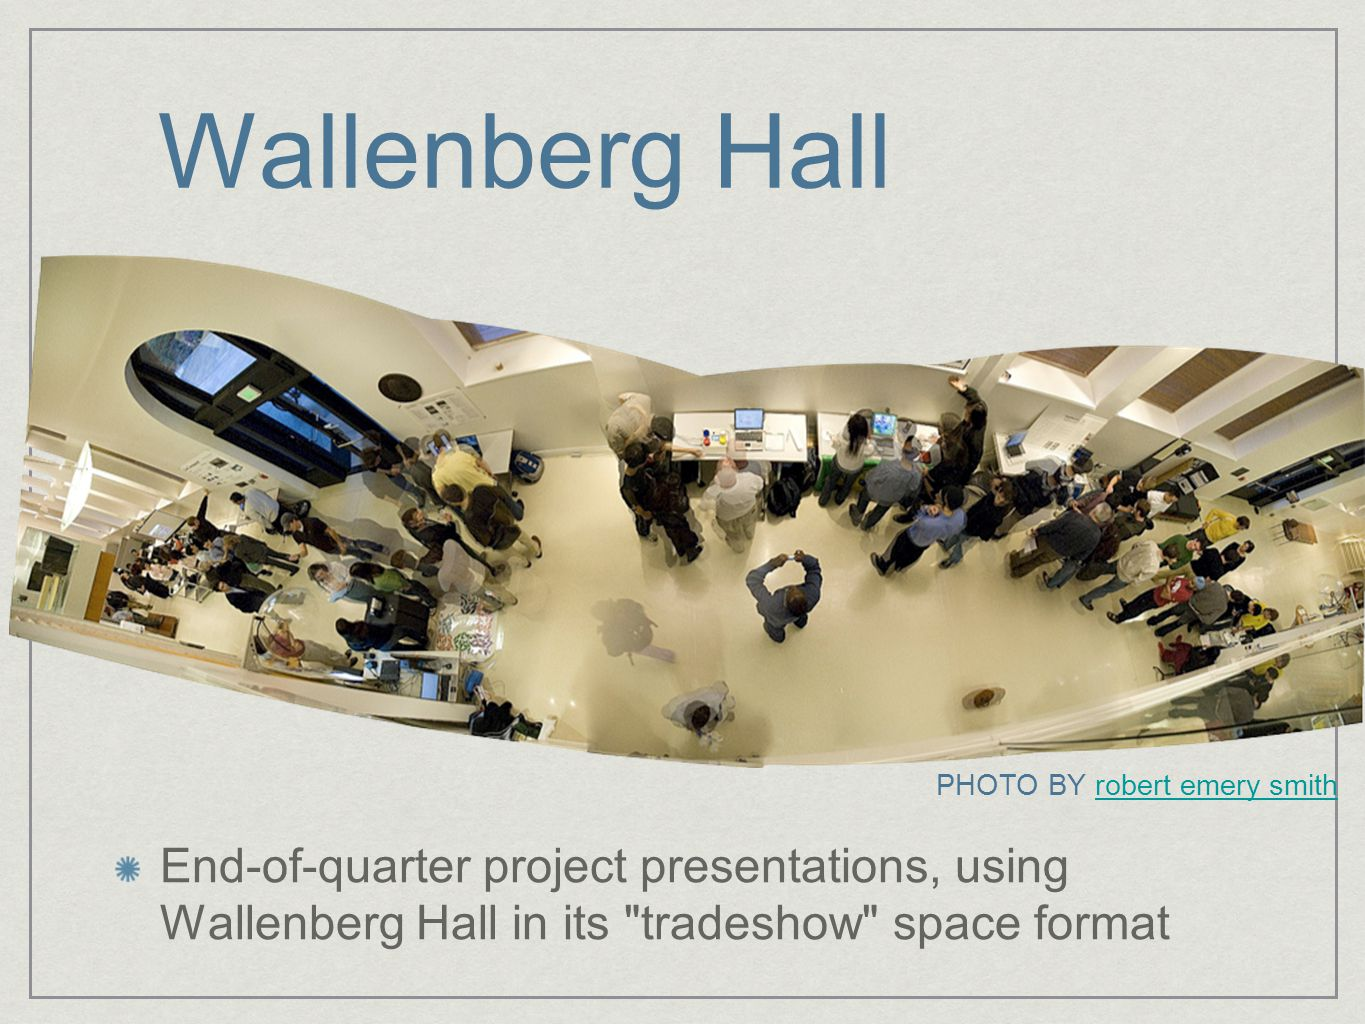 Wallenberg Hall PHOTO BY robert emery smithrobert emery smith End-of-quarter project presentations, using Wallenberg Hall in its tradeshow space format